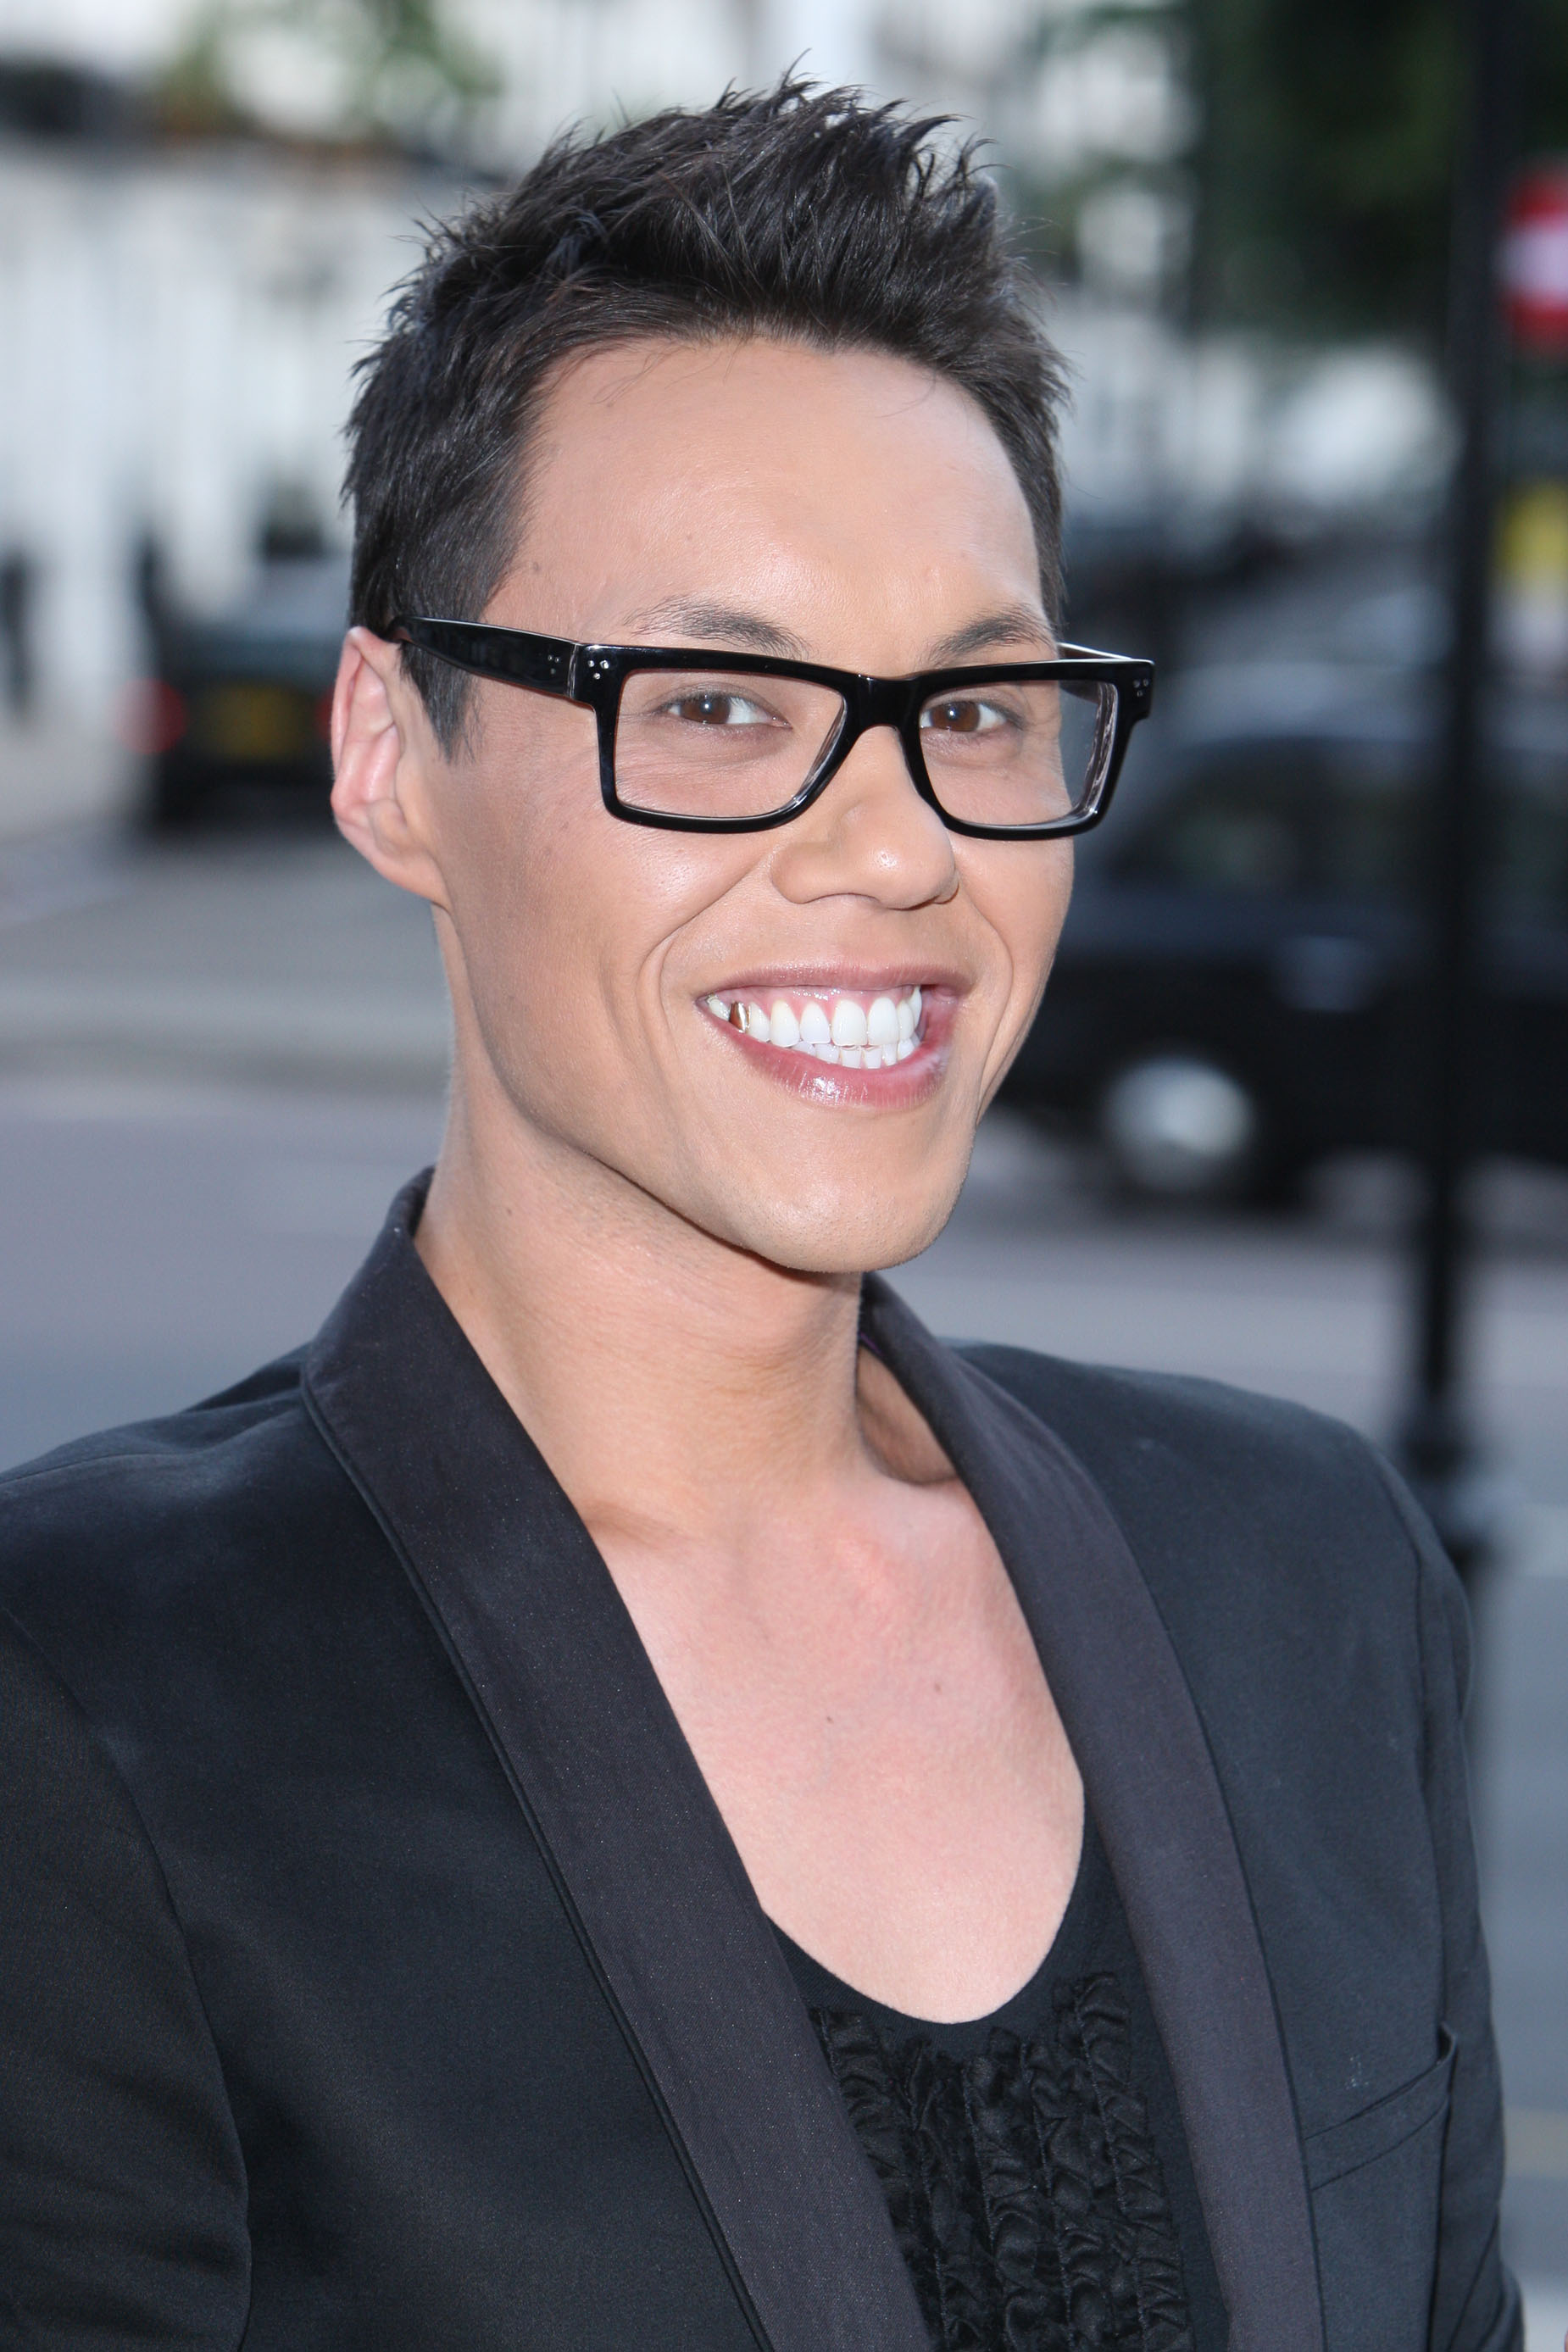 Wheelchair user becomes model with Gok's help